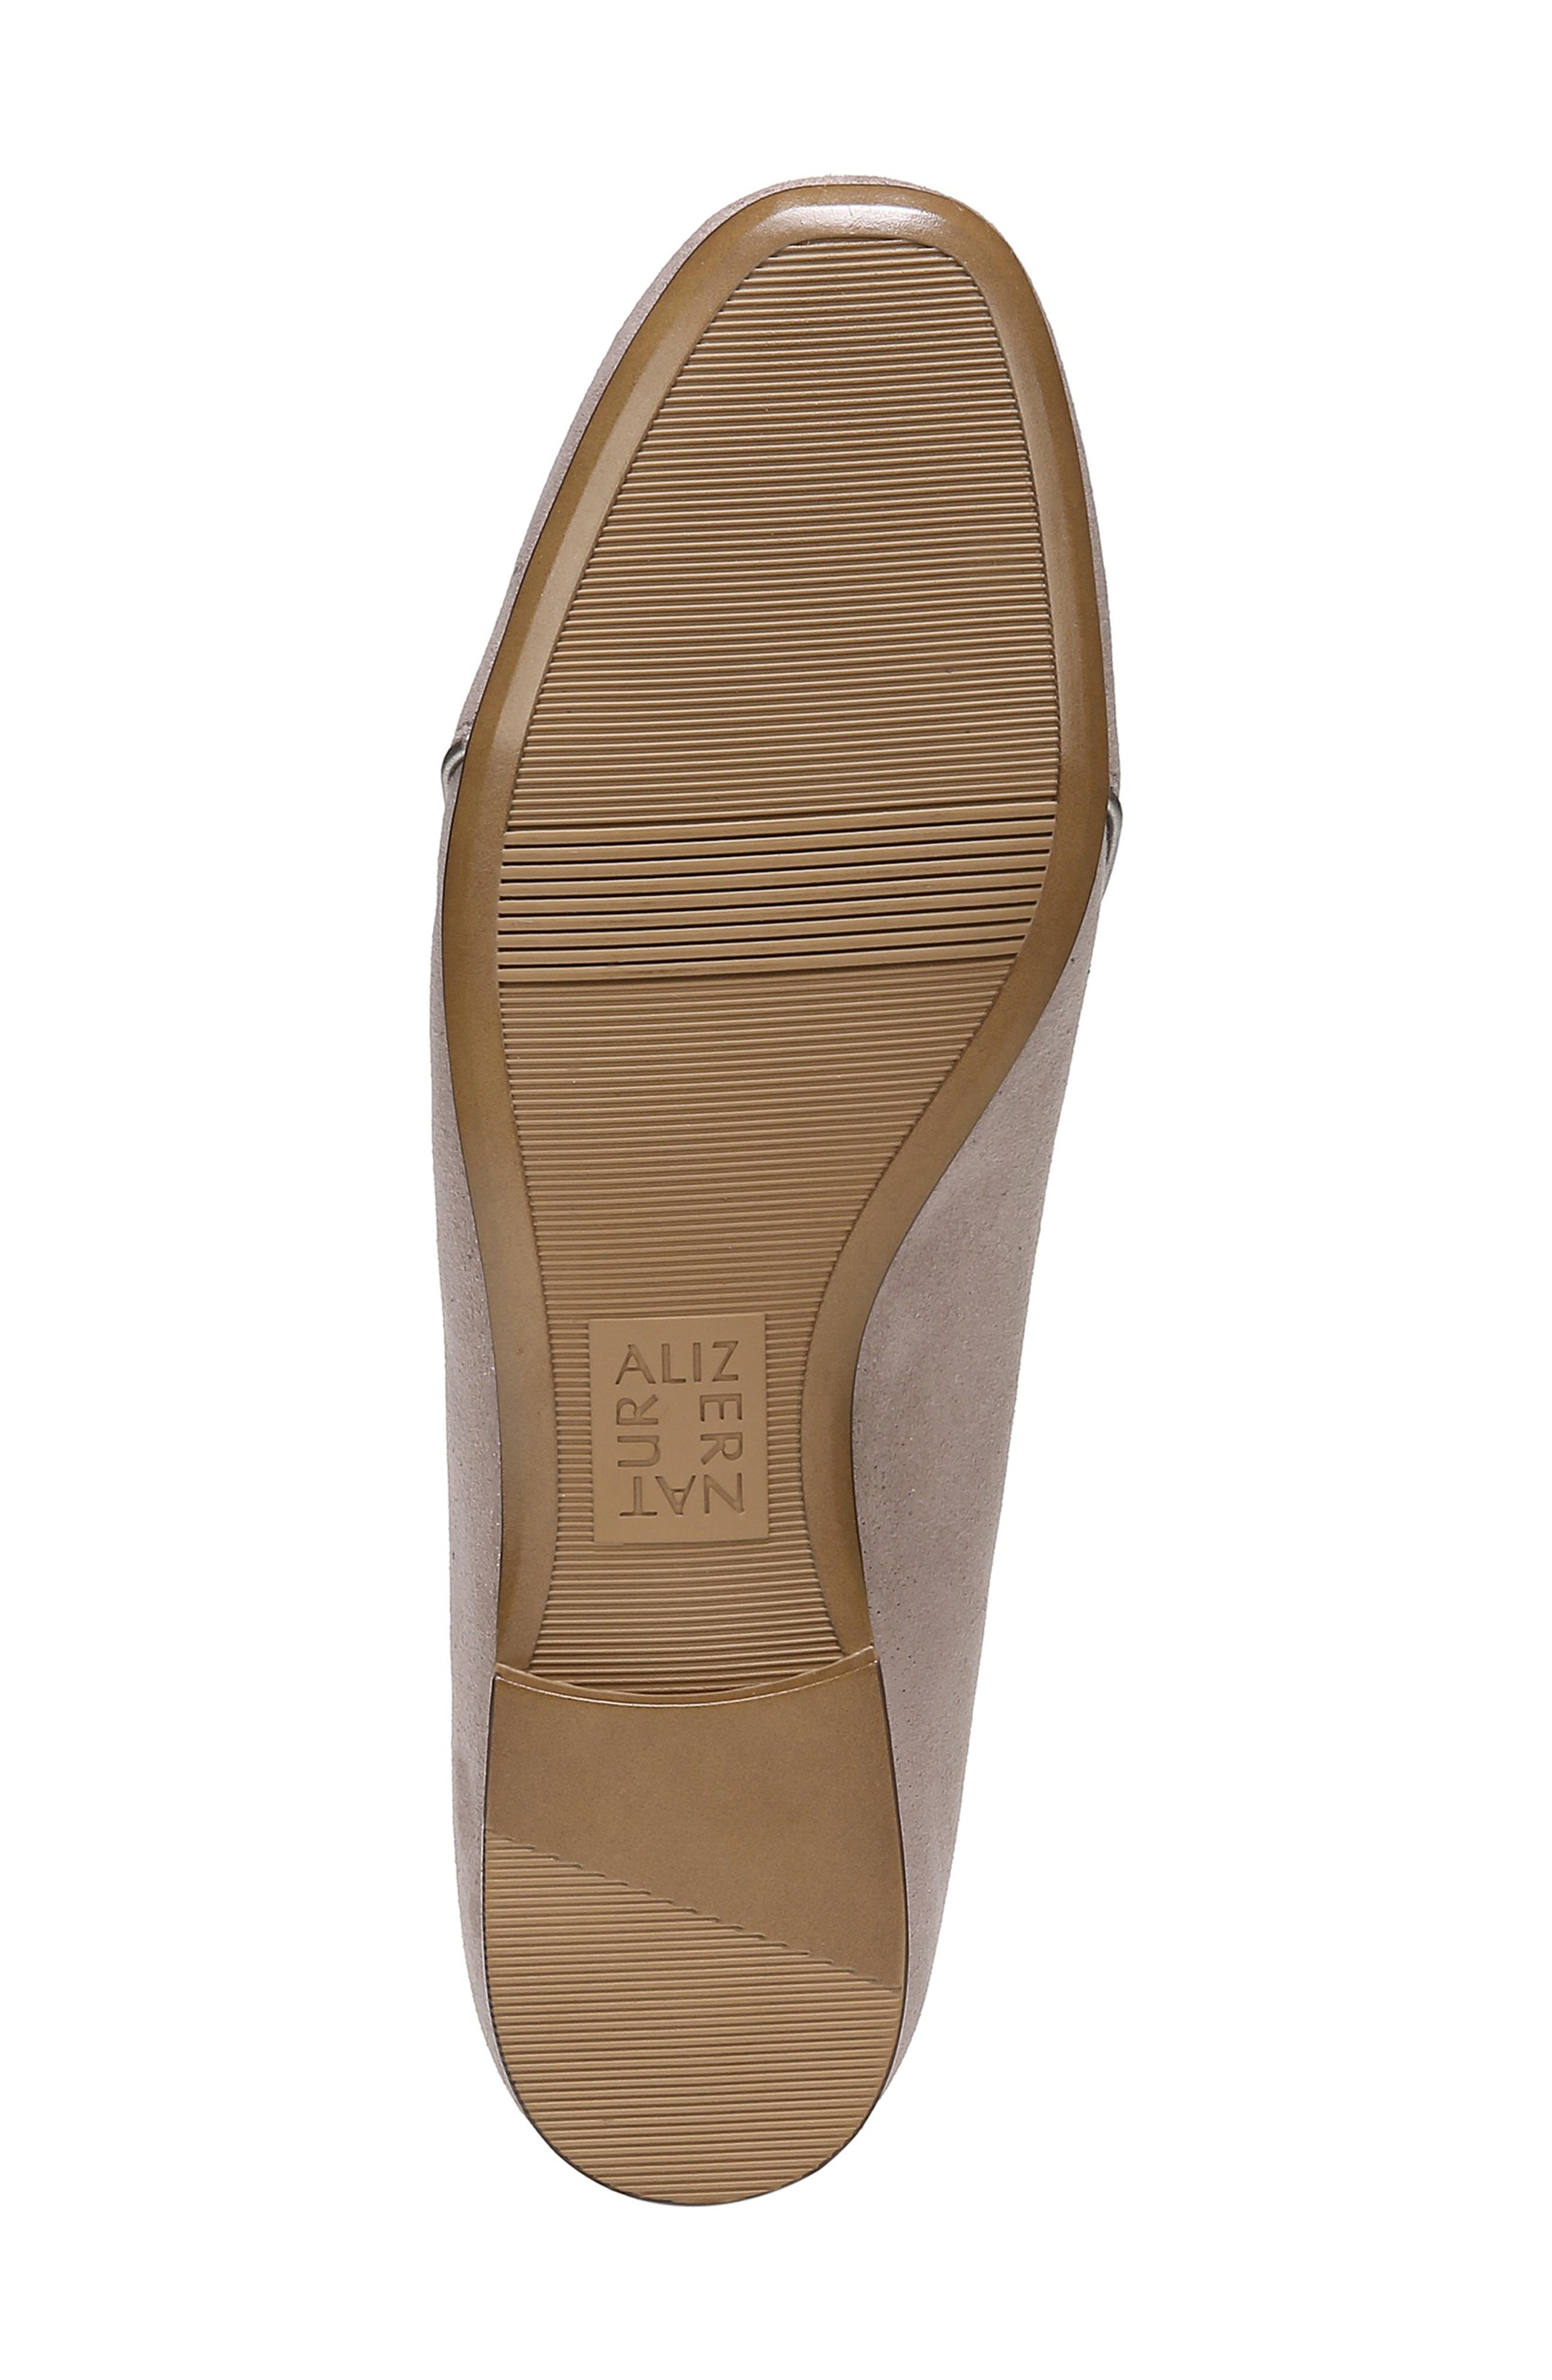 Emiline 2 Loafer,                             Alternate thumbnail 6, color,                             TAUPE GLITTER DUST SUEDE